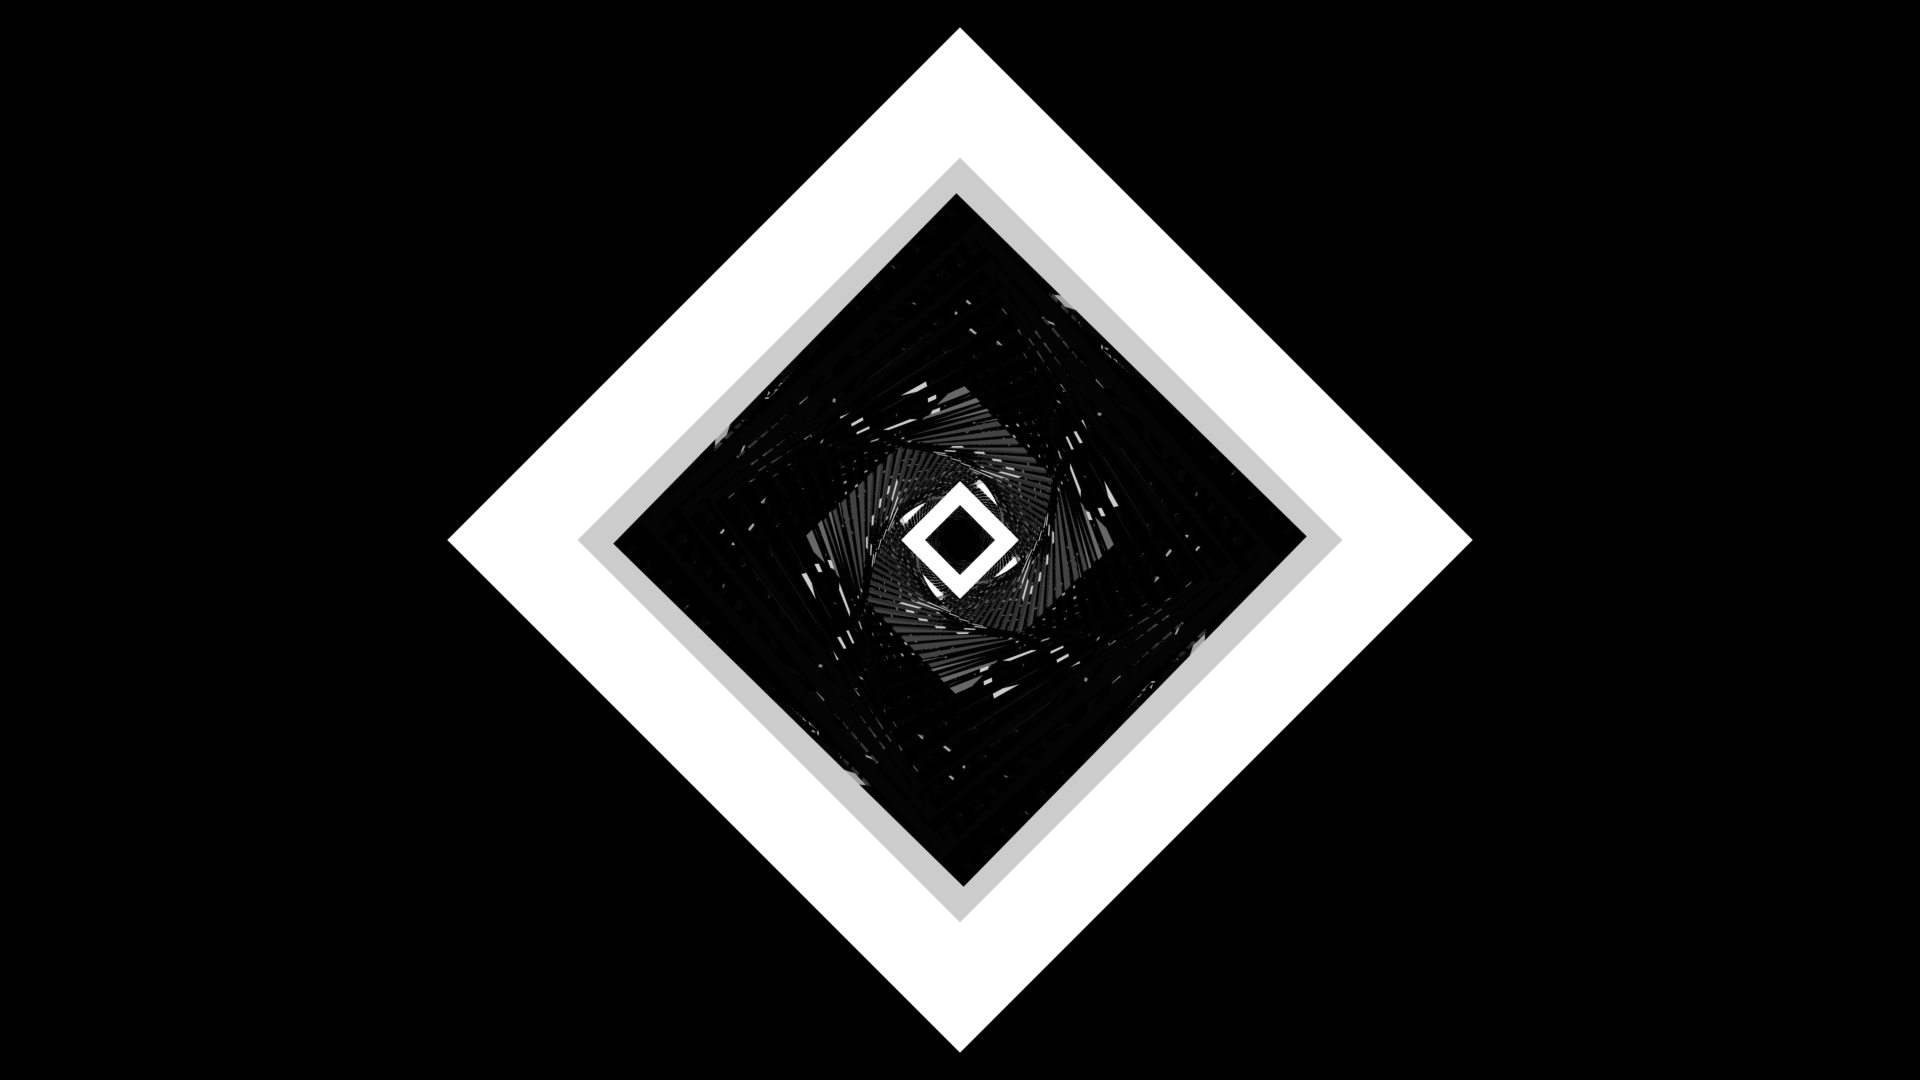 Abstract - Square  Black & White Wallpaper